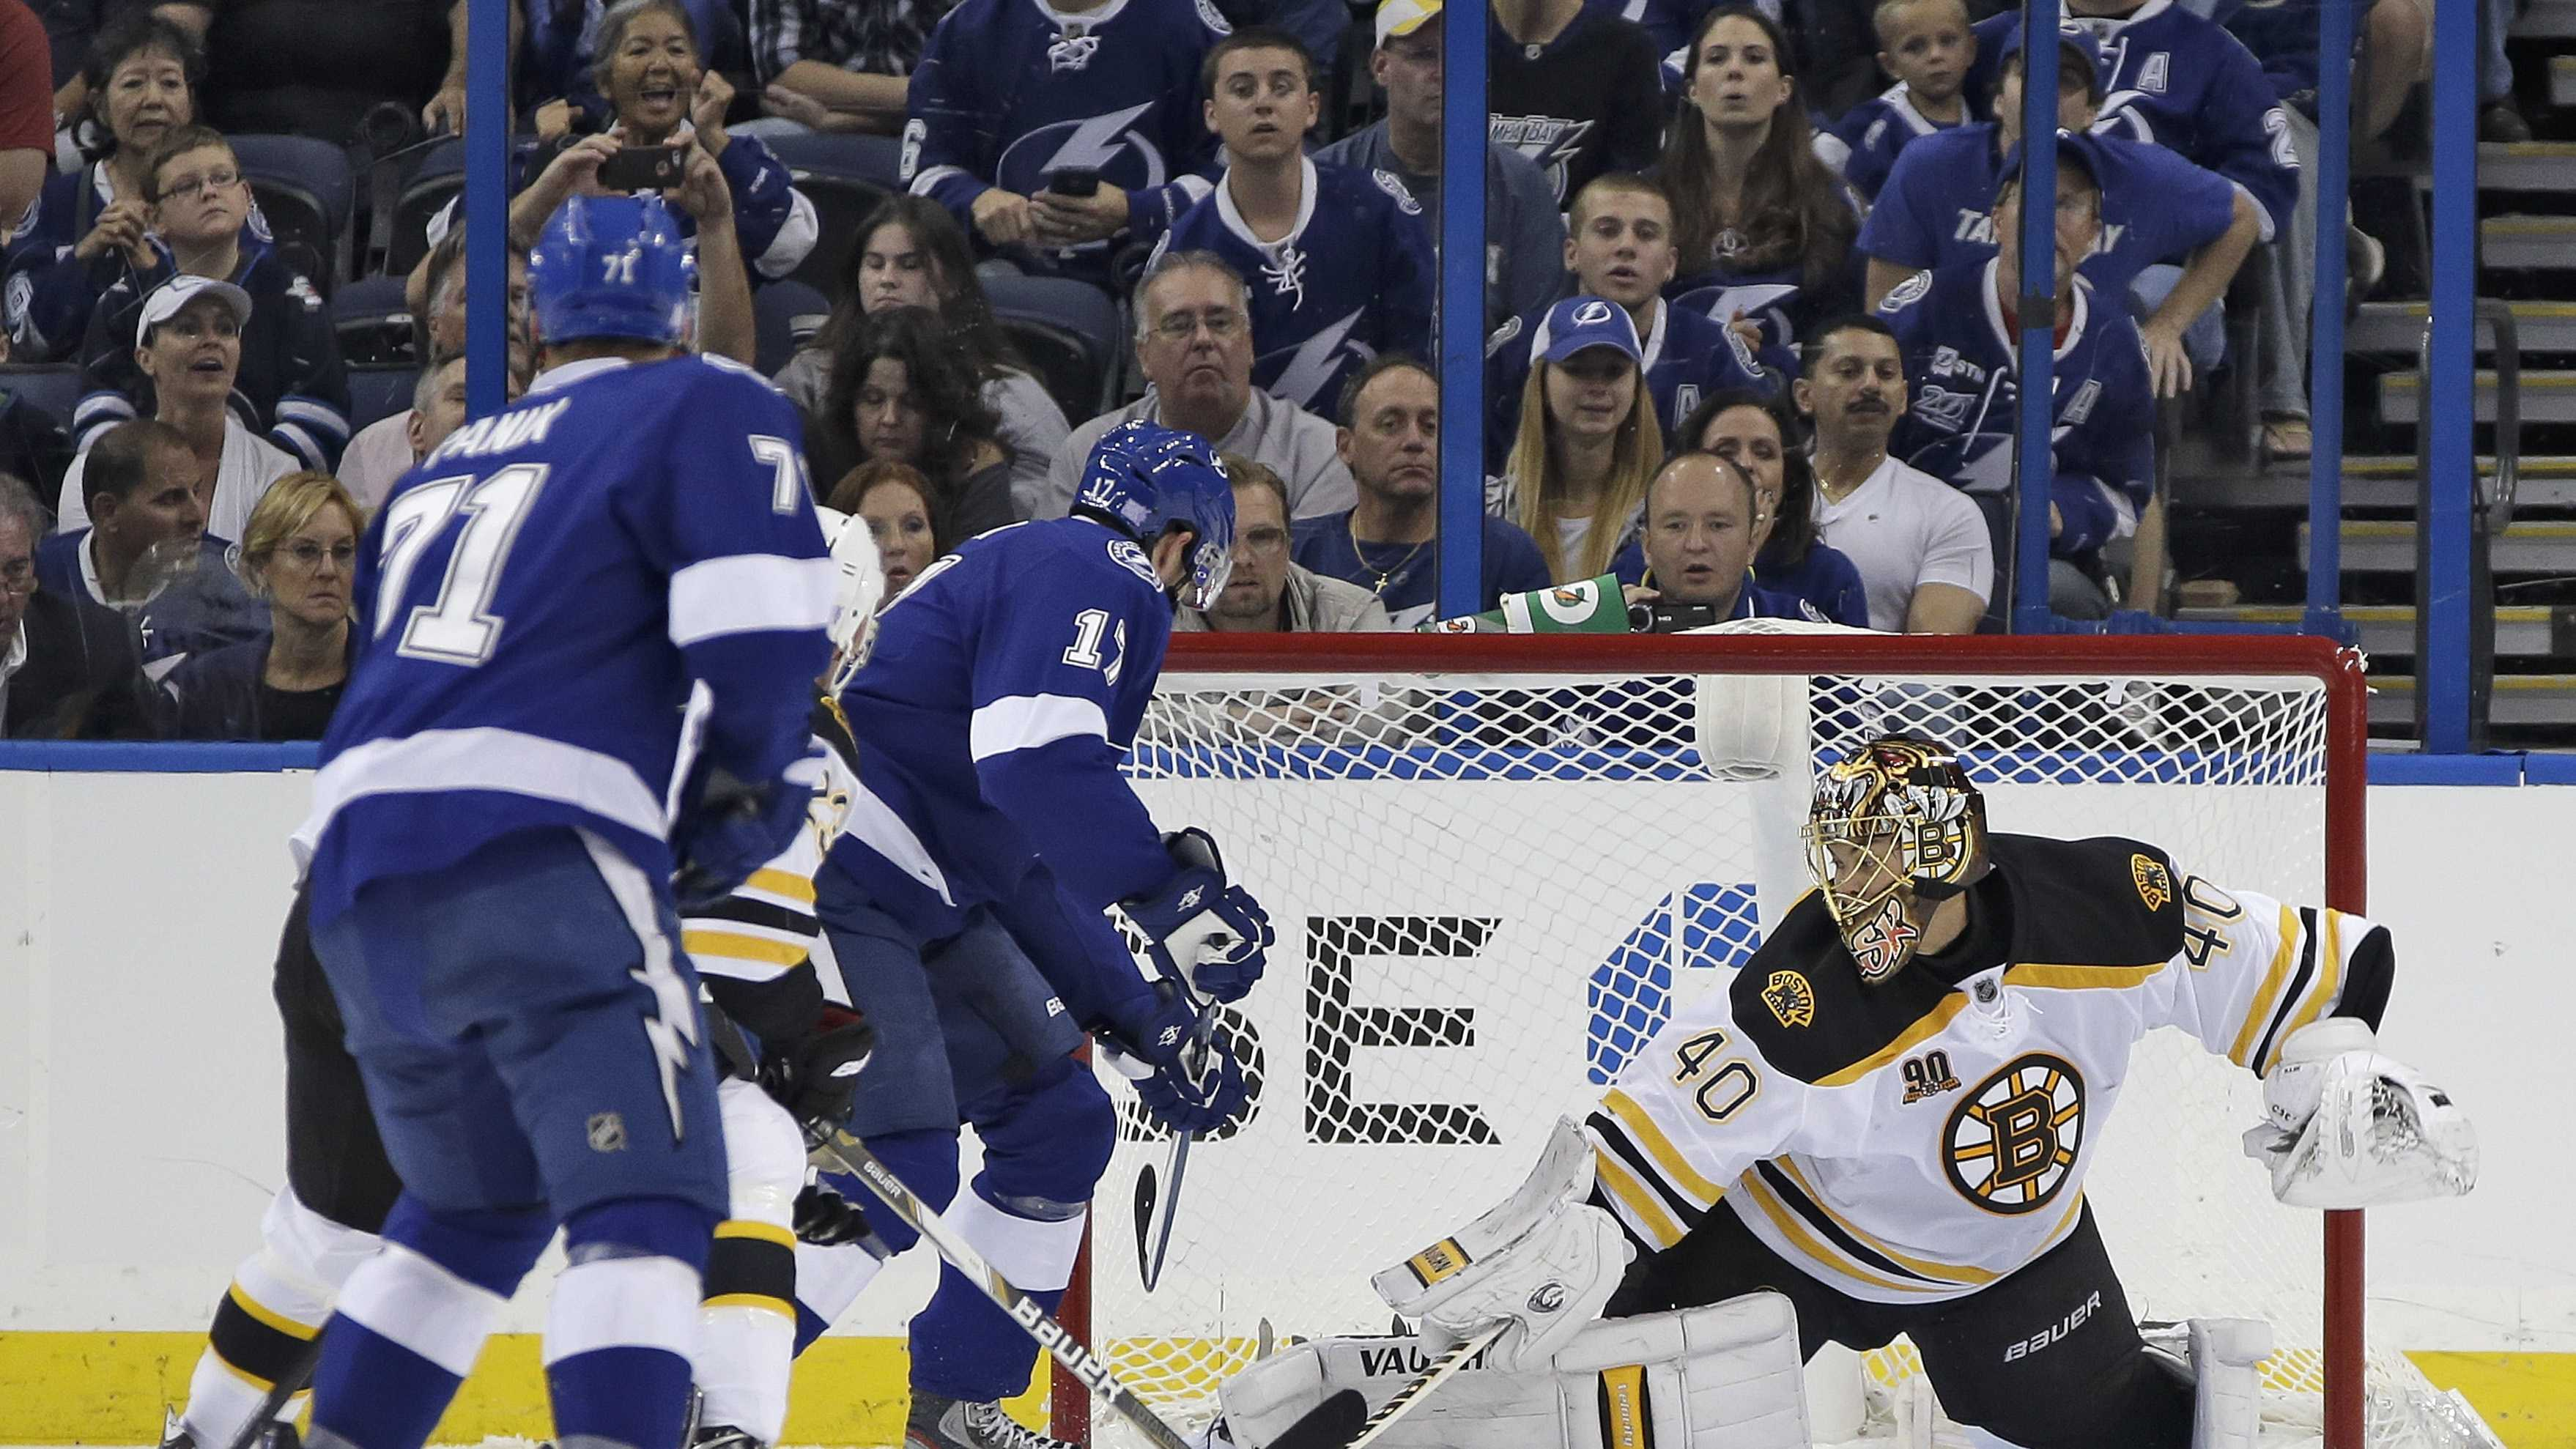 Boston Bruins goalie Tuukka Rask (40), of Finland, makes a save on a shot by Tampa Bay Lightning center Alex Killorn (17) during the first period of an NHL hockey game Saturday, Oct. 19, 2013, inTampa, Fla.